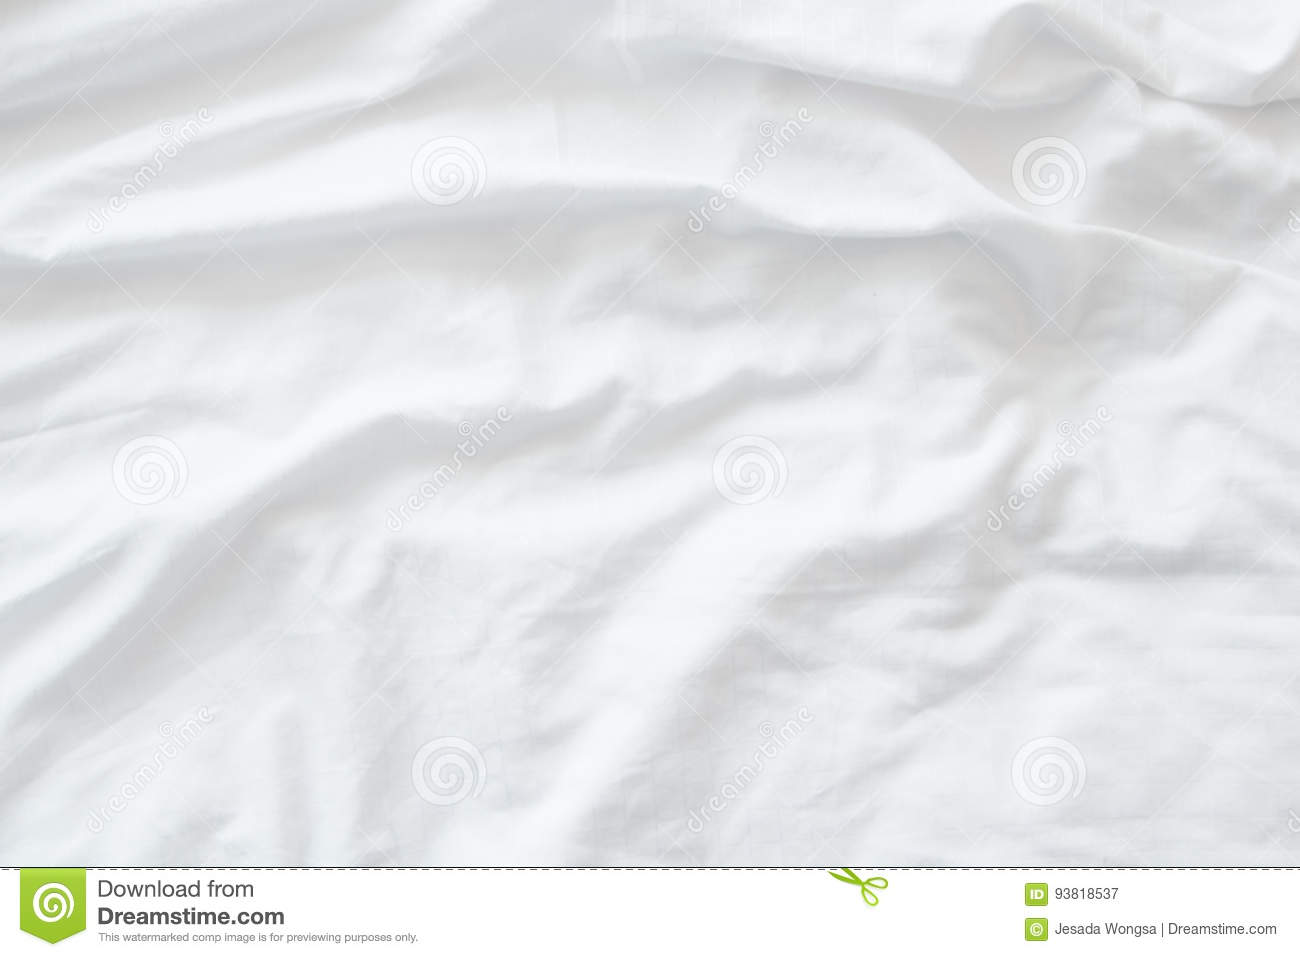 Wrinkled bed sheets texture - White Bedding Sheets Or White Fabric Wrinkle Texture Background Soft Focus